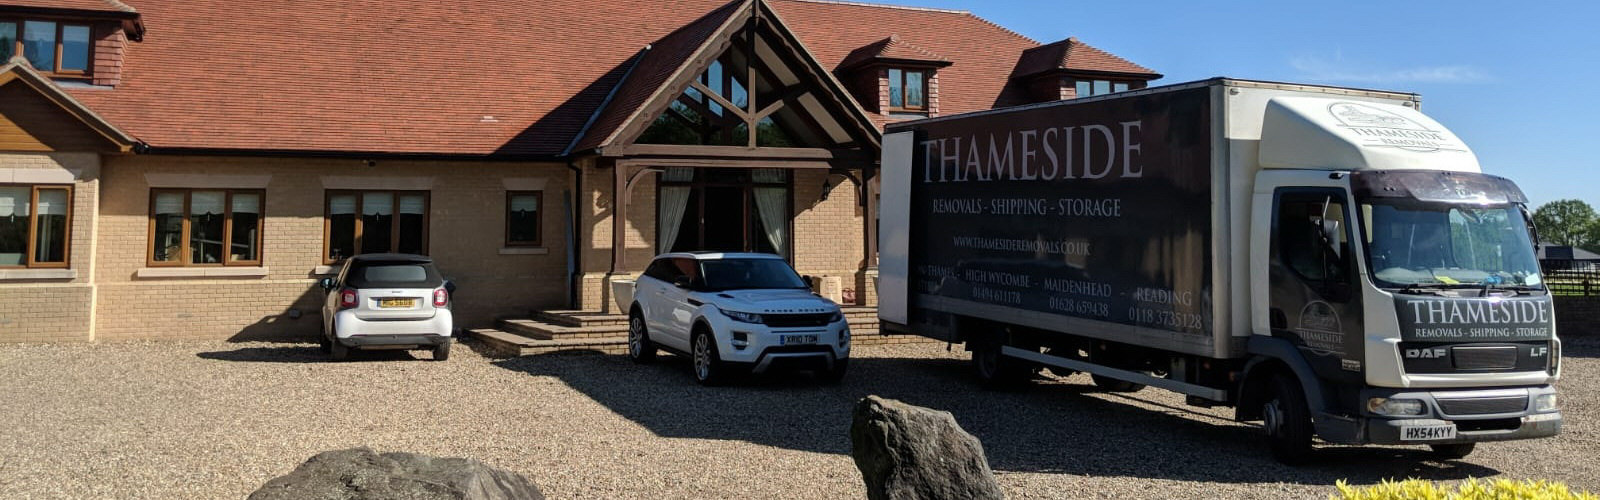 removals wallingford, marlow, didcot, henley on thames, maidenhead